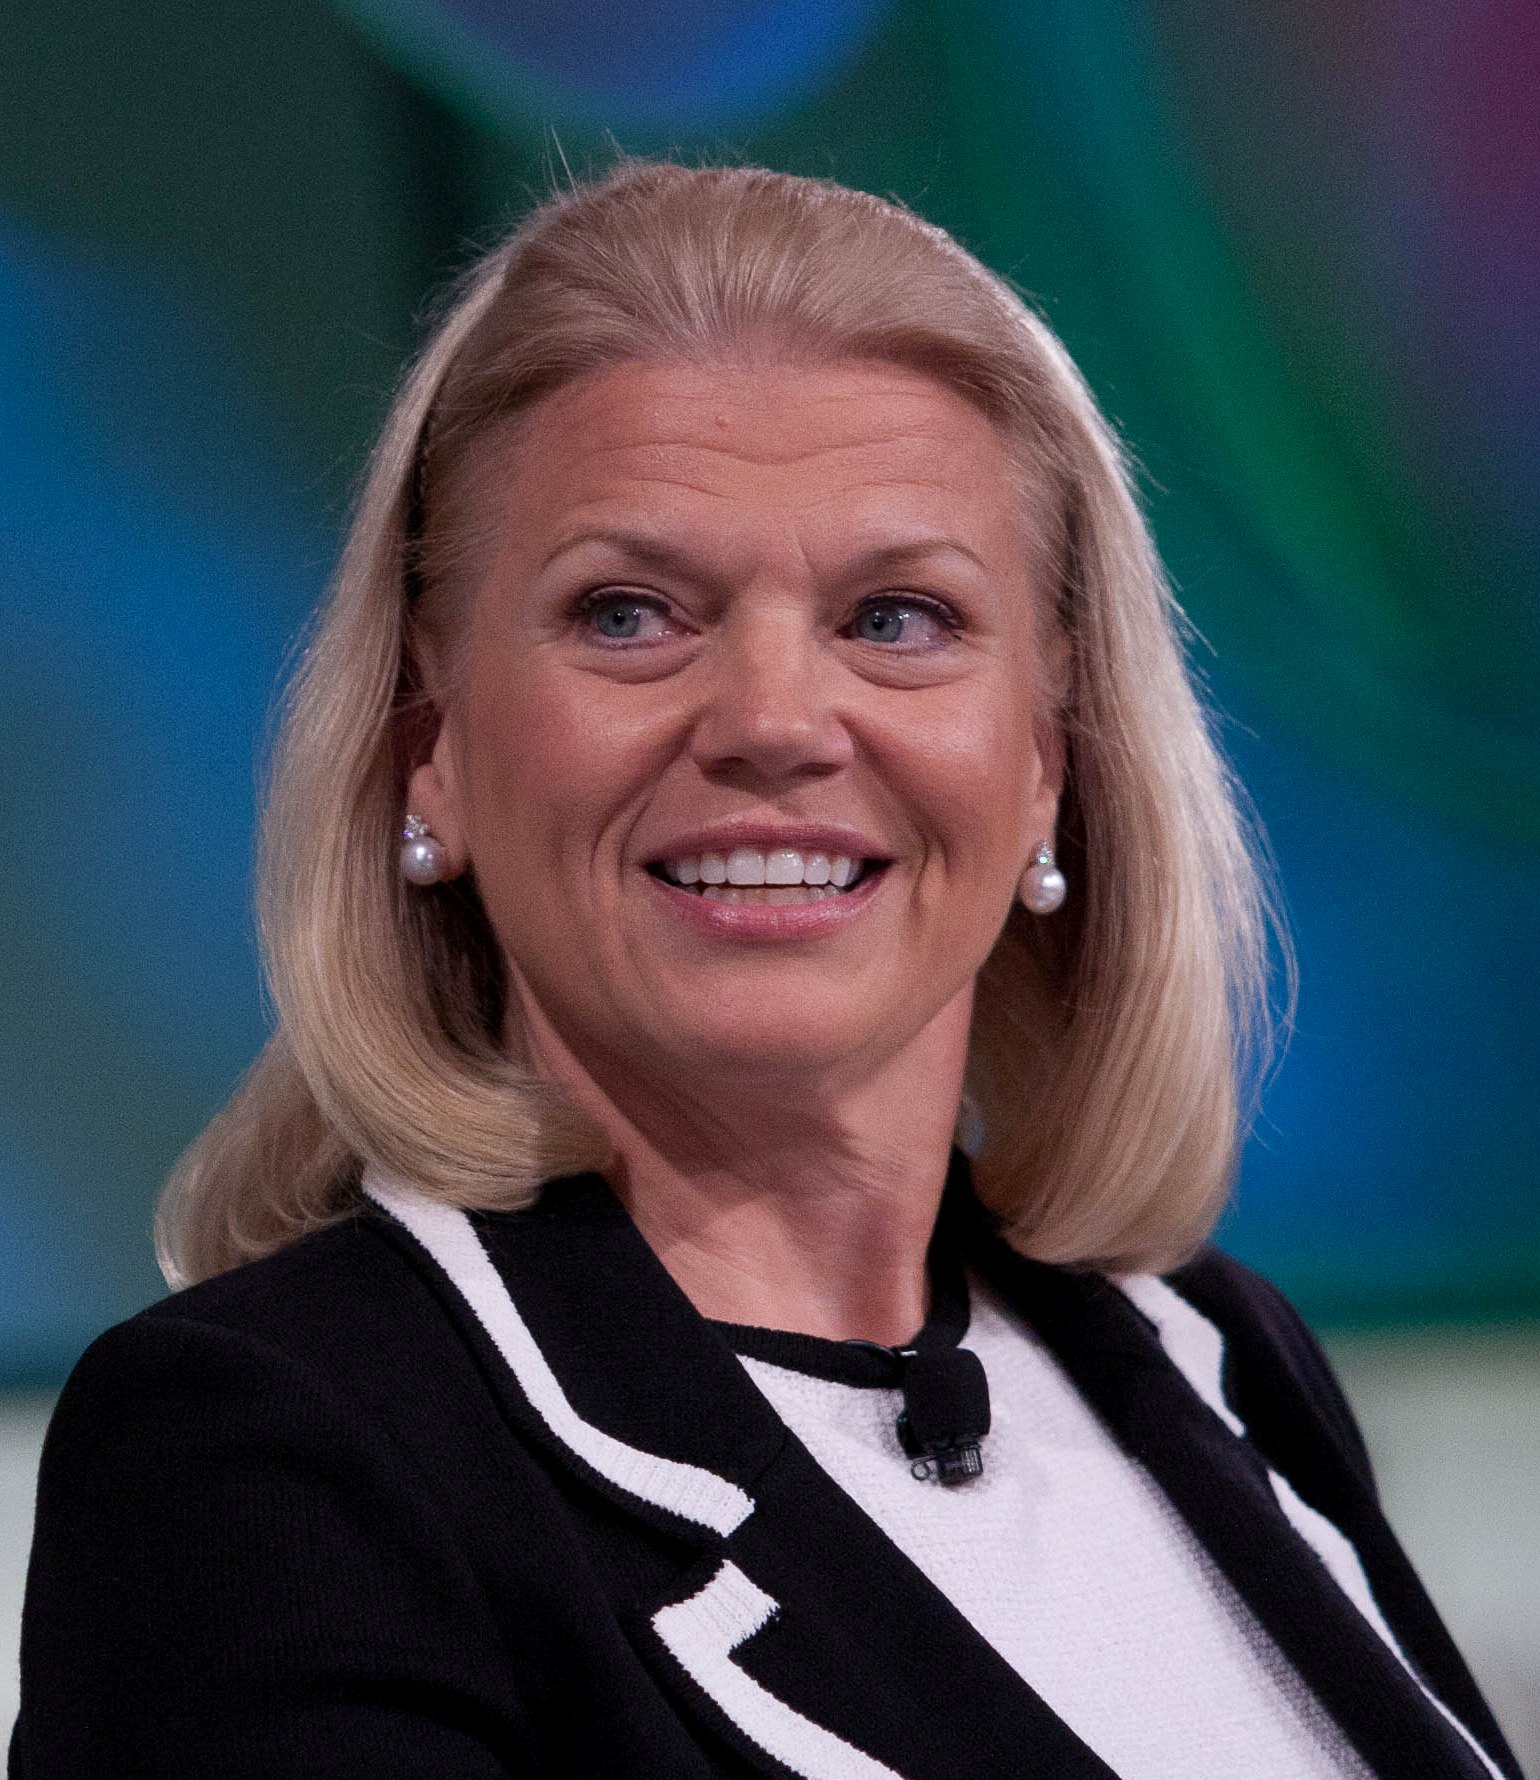 Psicosoft - Virginia Rometty: IBM's chief executive on leadership